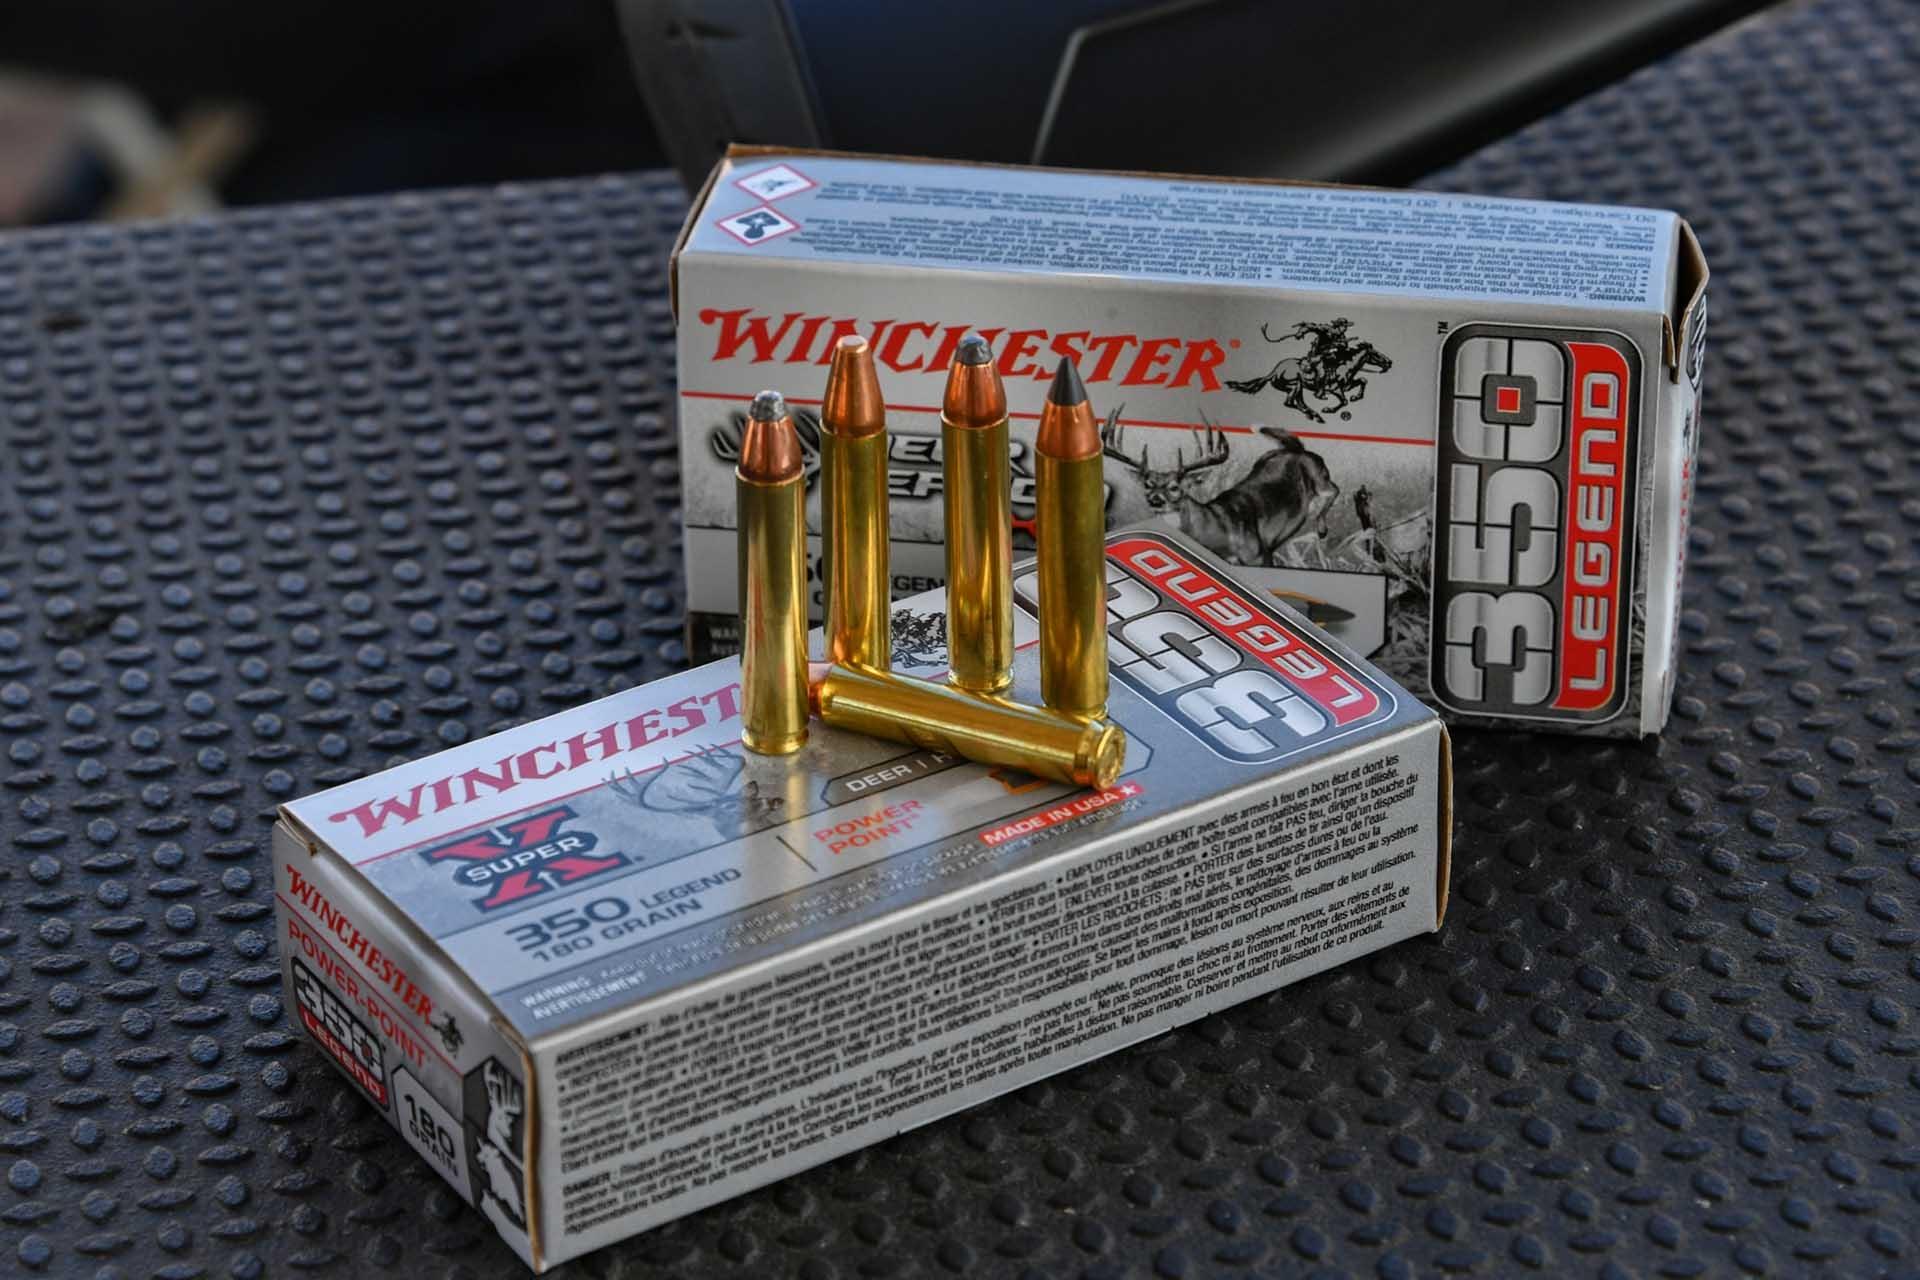 winchester-ammunition: Winchester .350 Legend, a new hunting rifle caliber